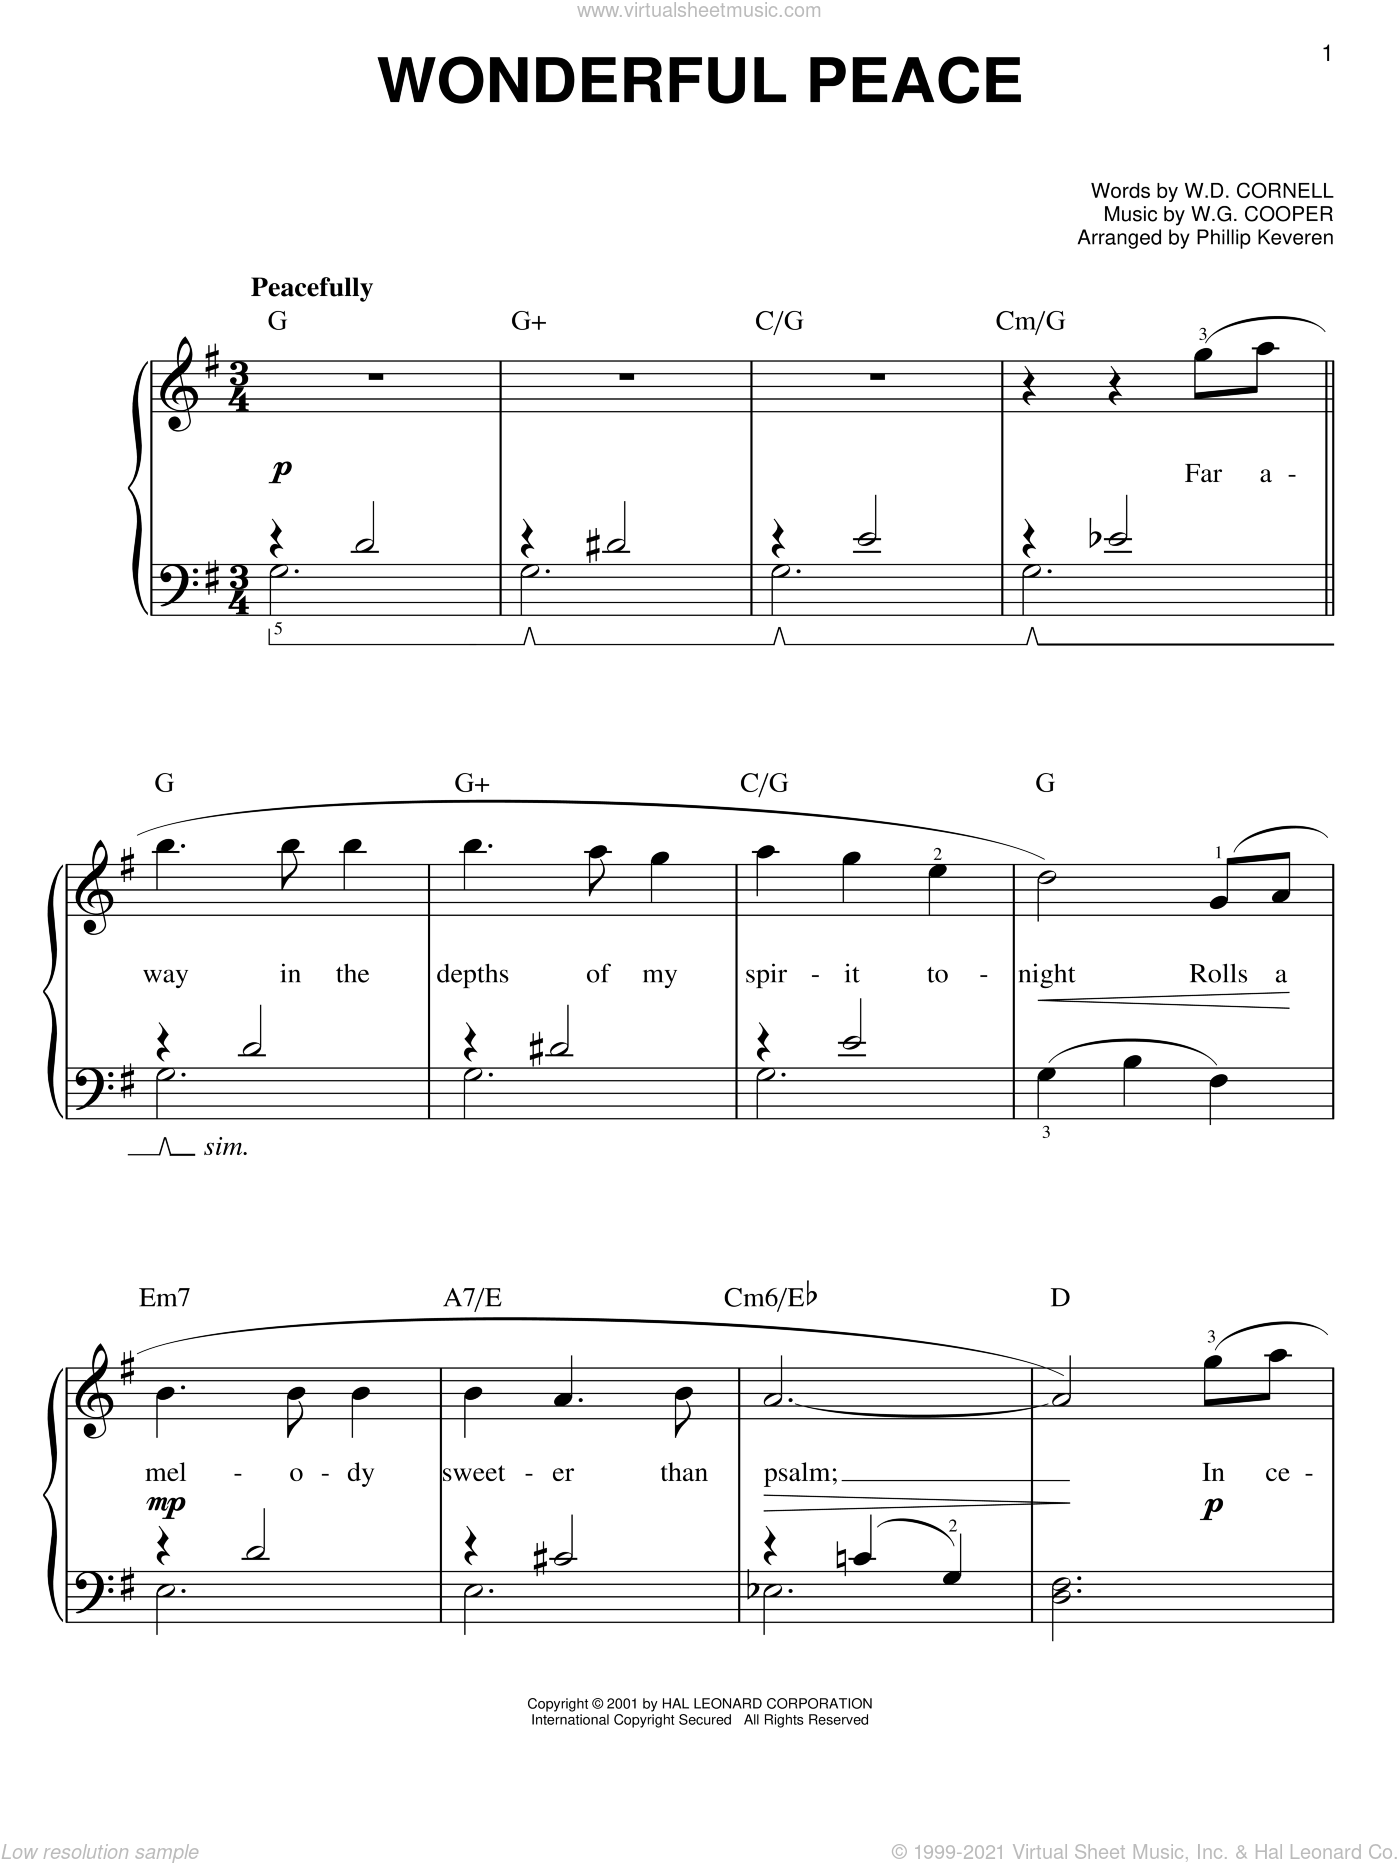 Wonderful Peace sheet music for piano solo by W.G. Cooper